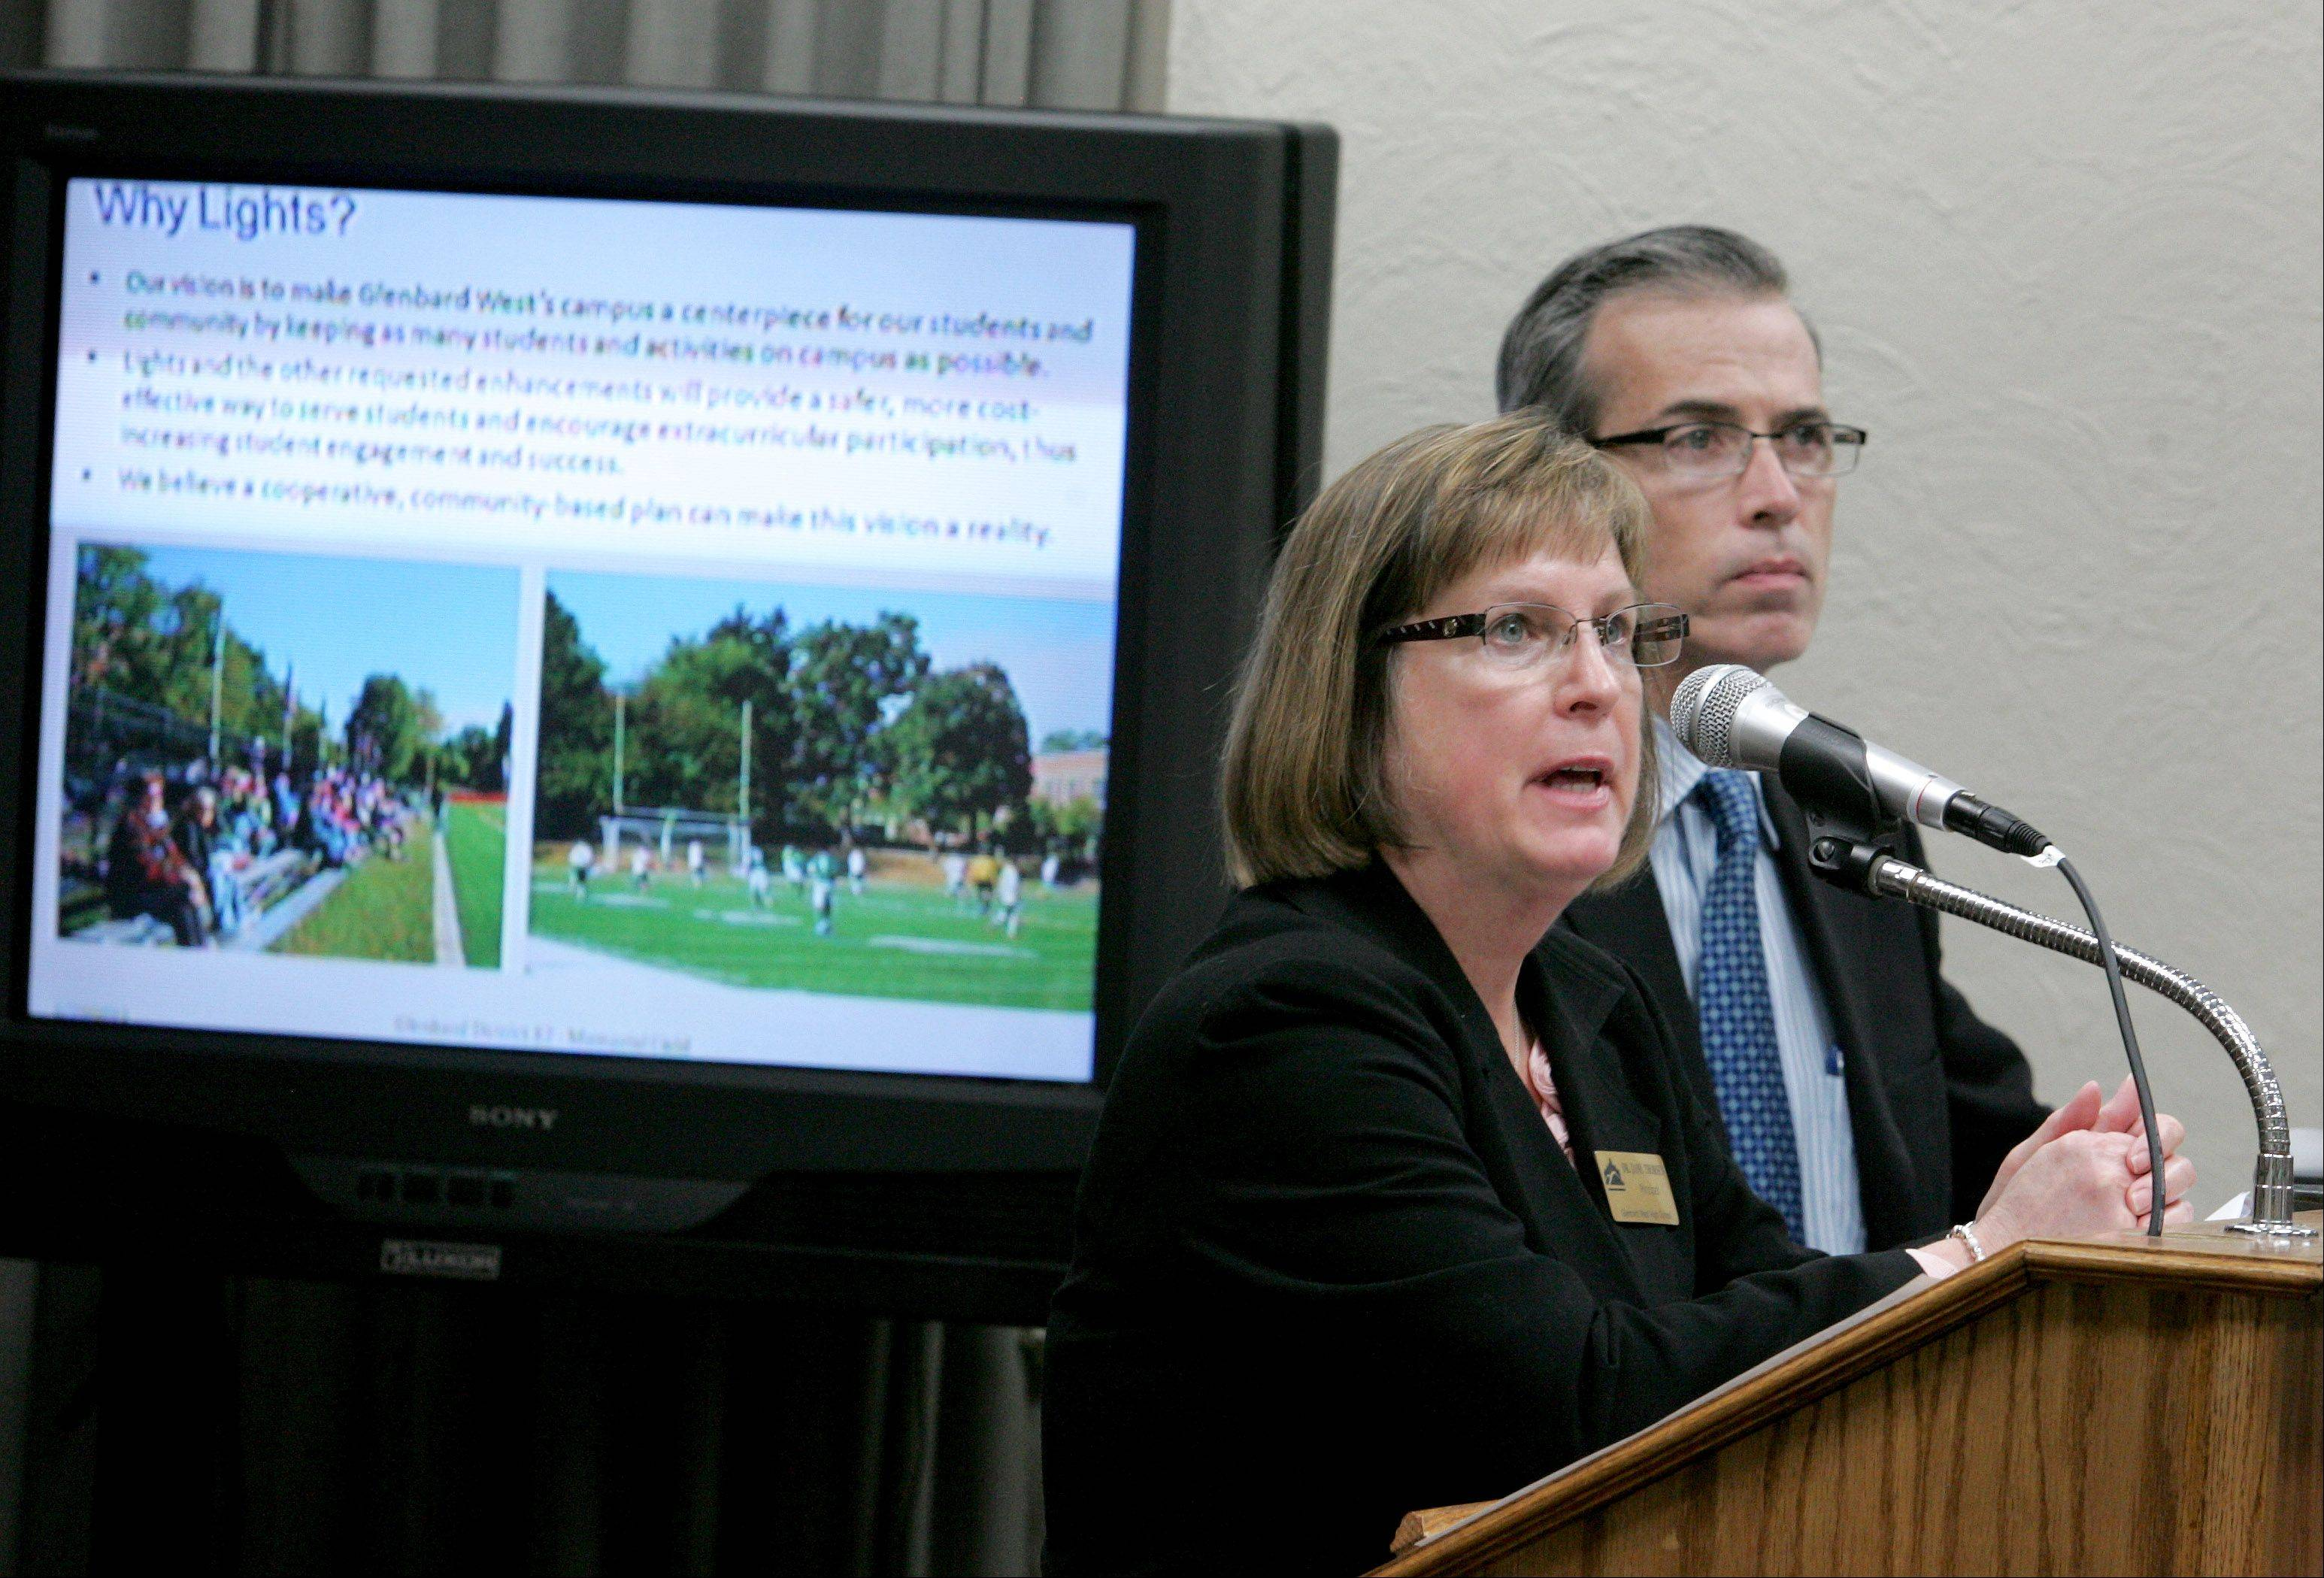 Jane Thorsen, principal of Glenbard West High School, and Patrick Brosnan of Legat Architects speak in favor of lights for Memorial Field during a Glen Ellyn village board meeting Monday.